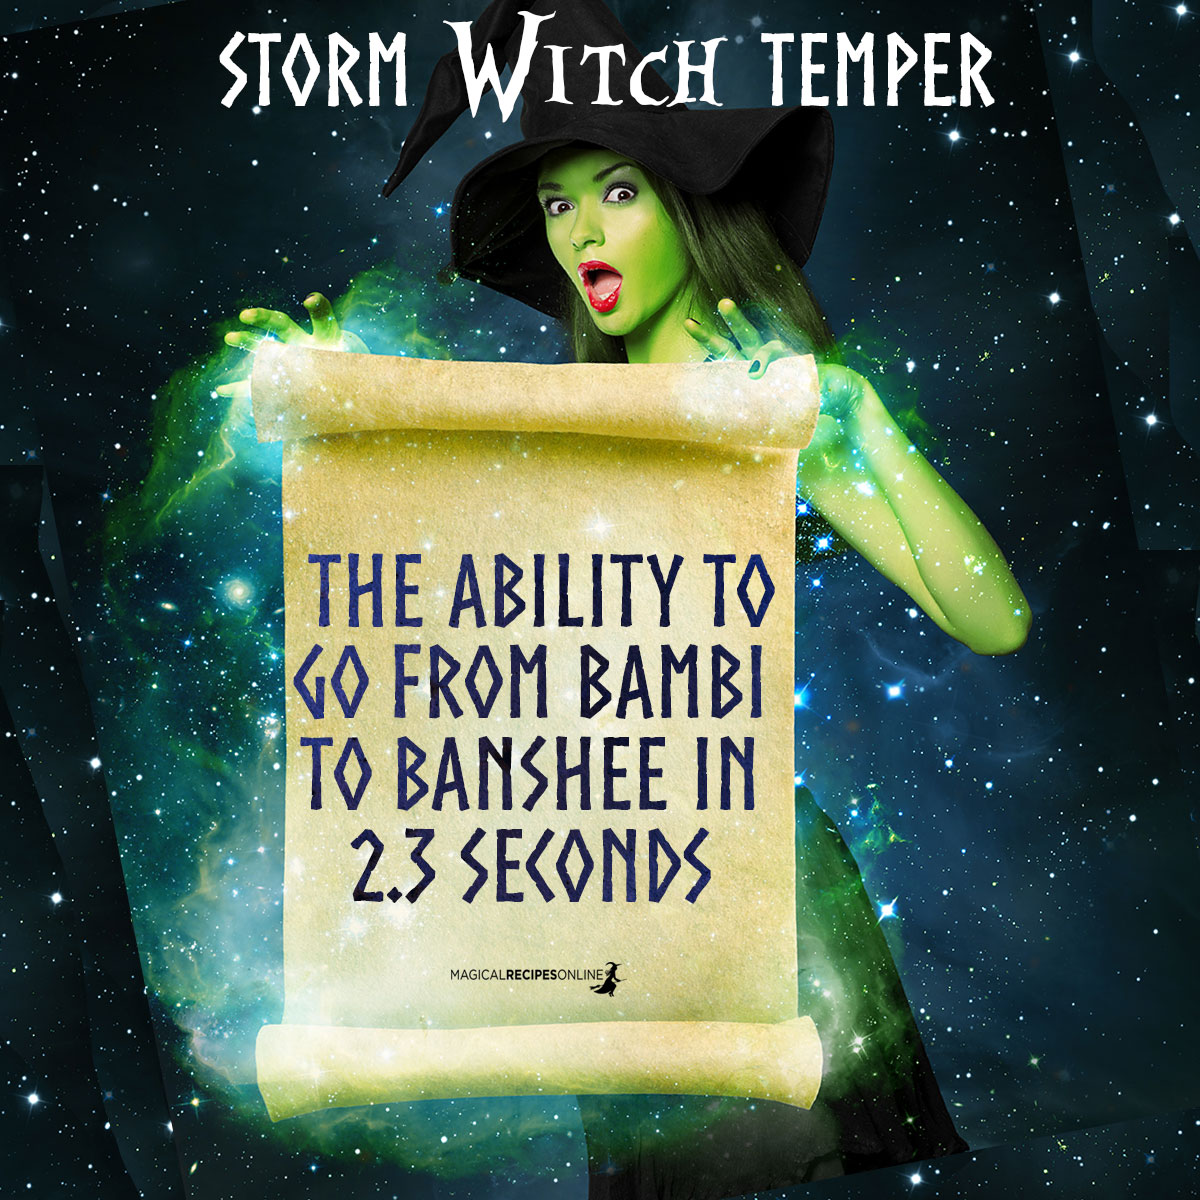 2. 'Storm Witch' Temper Storm Witches are quick-tempered. Although they can be extremely sweet and caring, 'they've got the ability to go from Bambi to banshee in 2.3 seconds'.